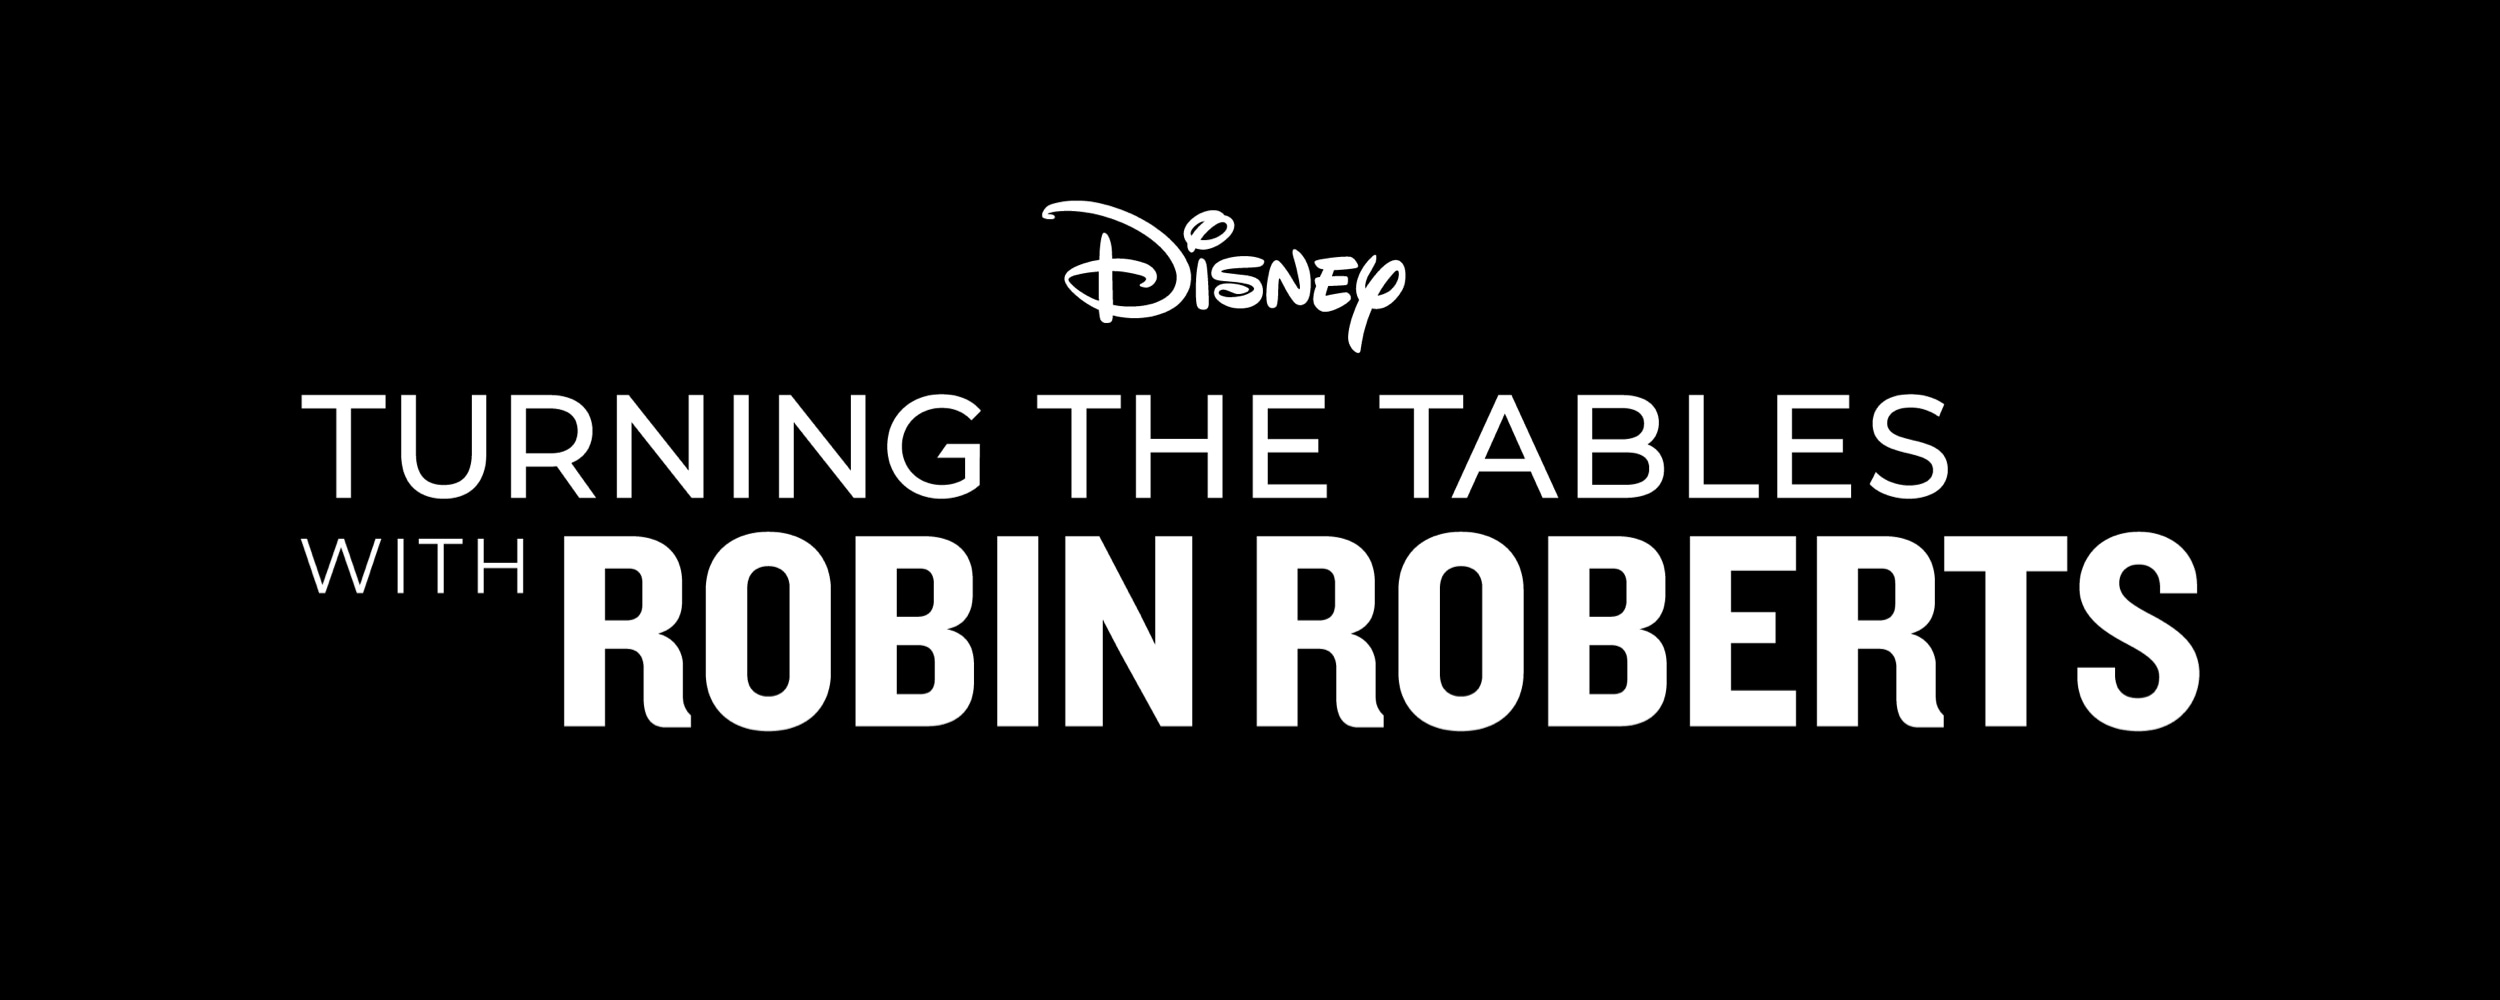 Turning the Tables with Robin Roberts Media Kit